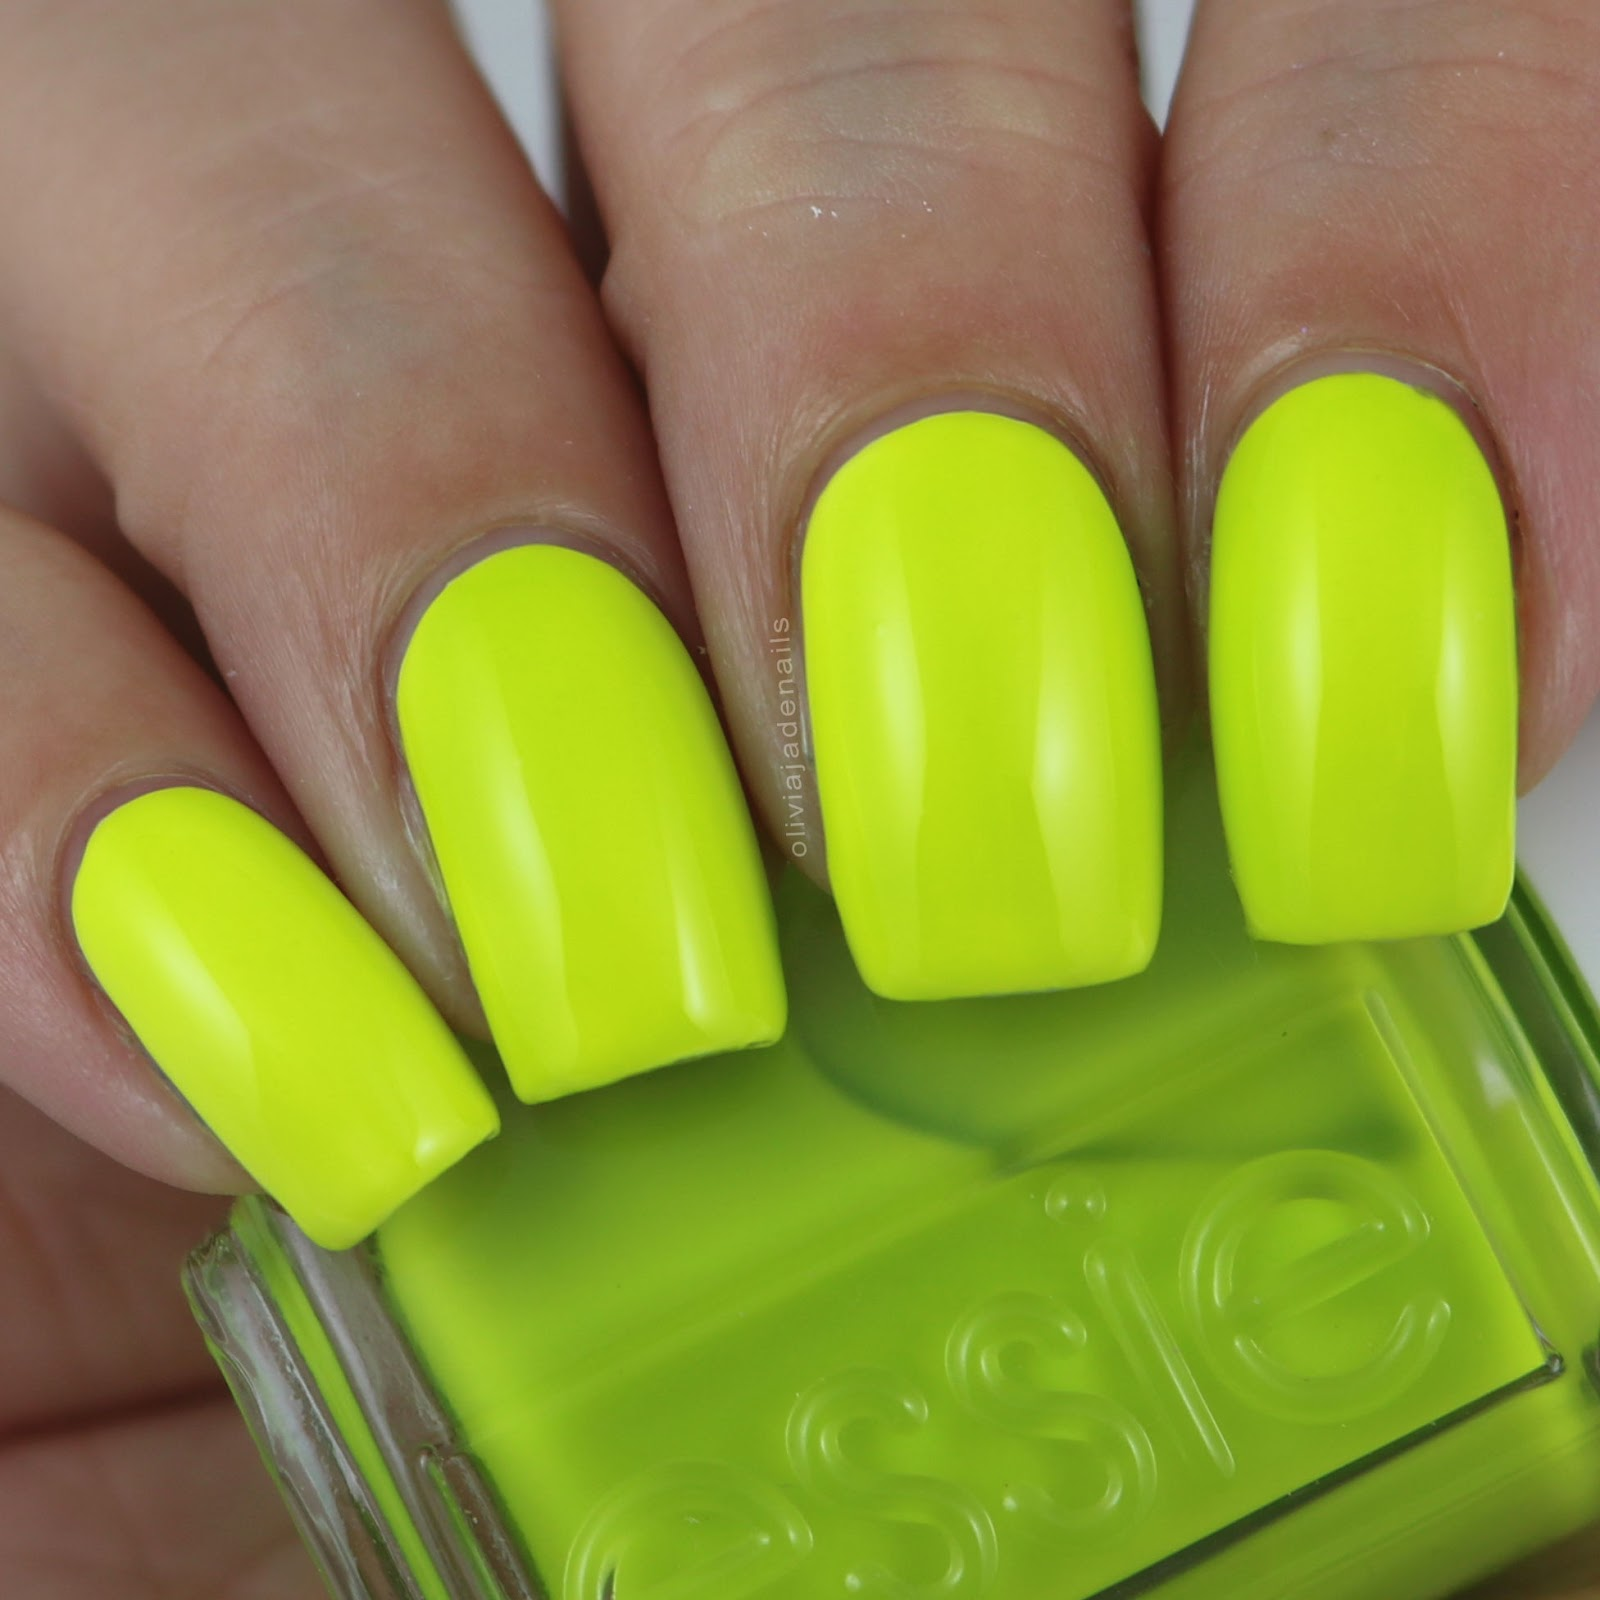 Olivia Jade Nails: Essie Neon 2016 Collection - Swatches & Review